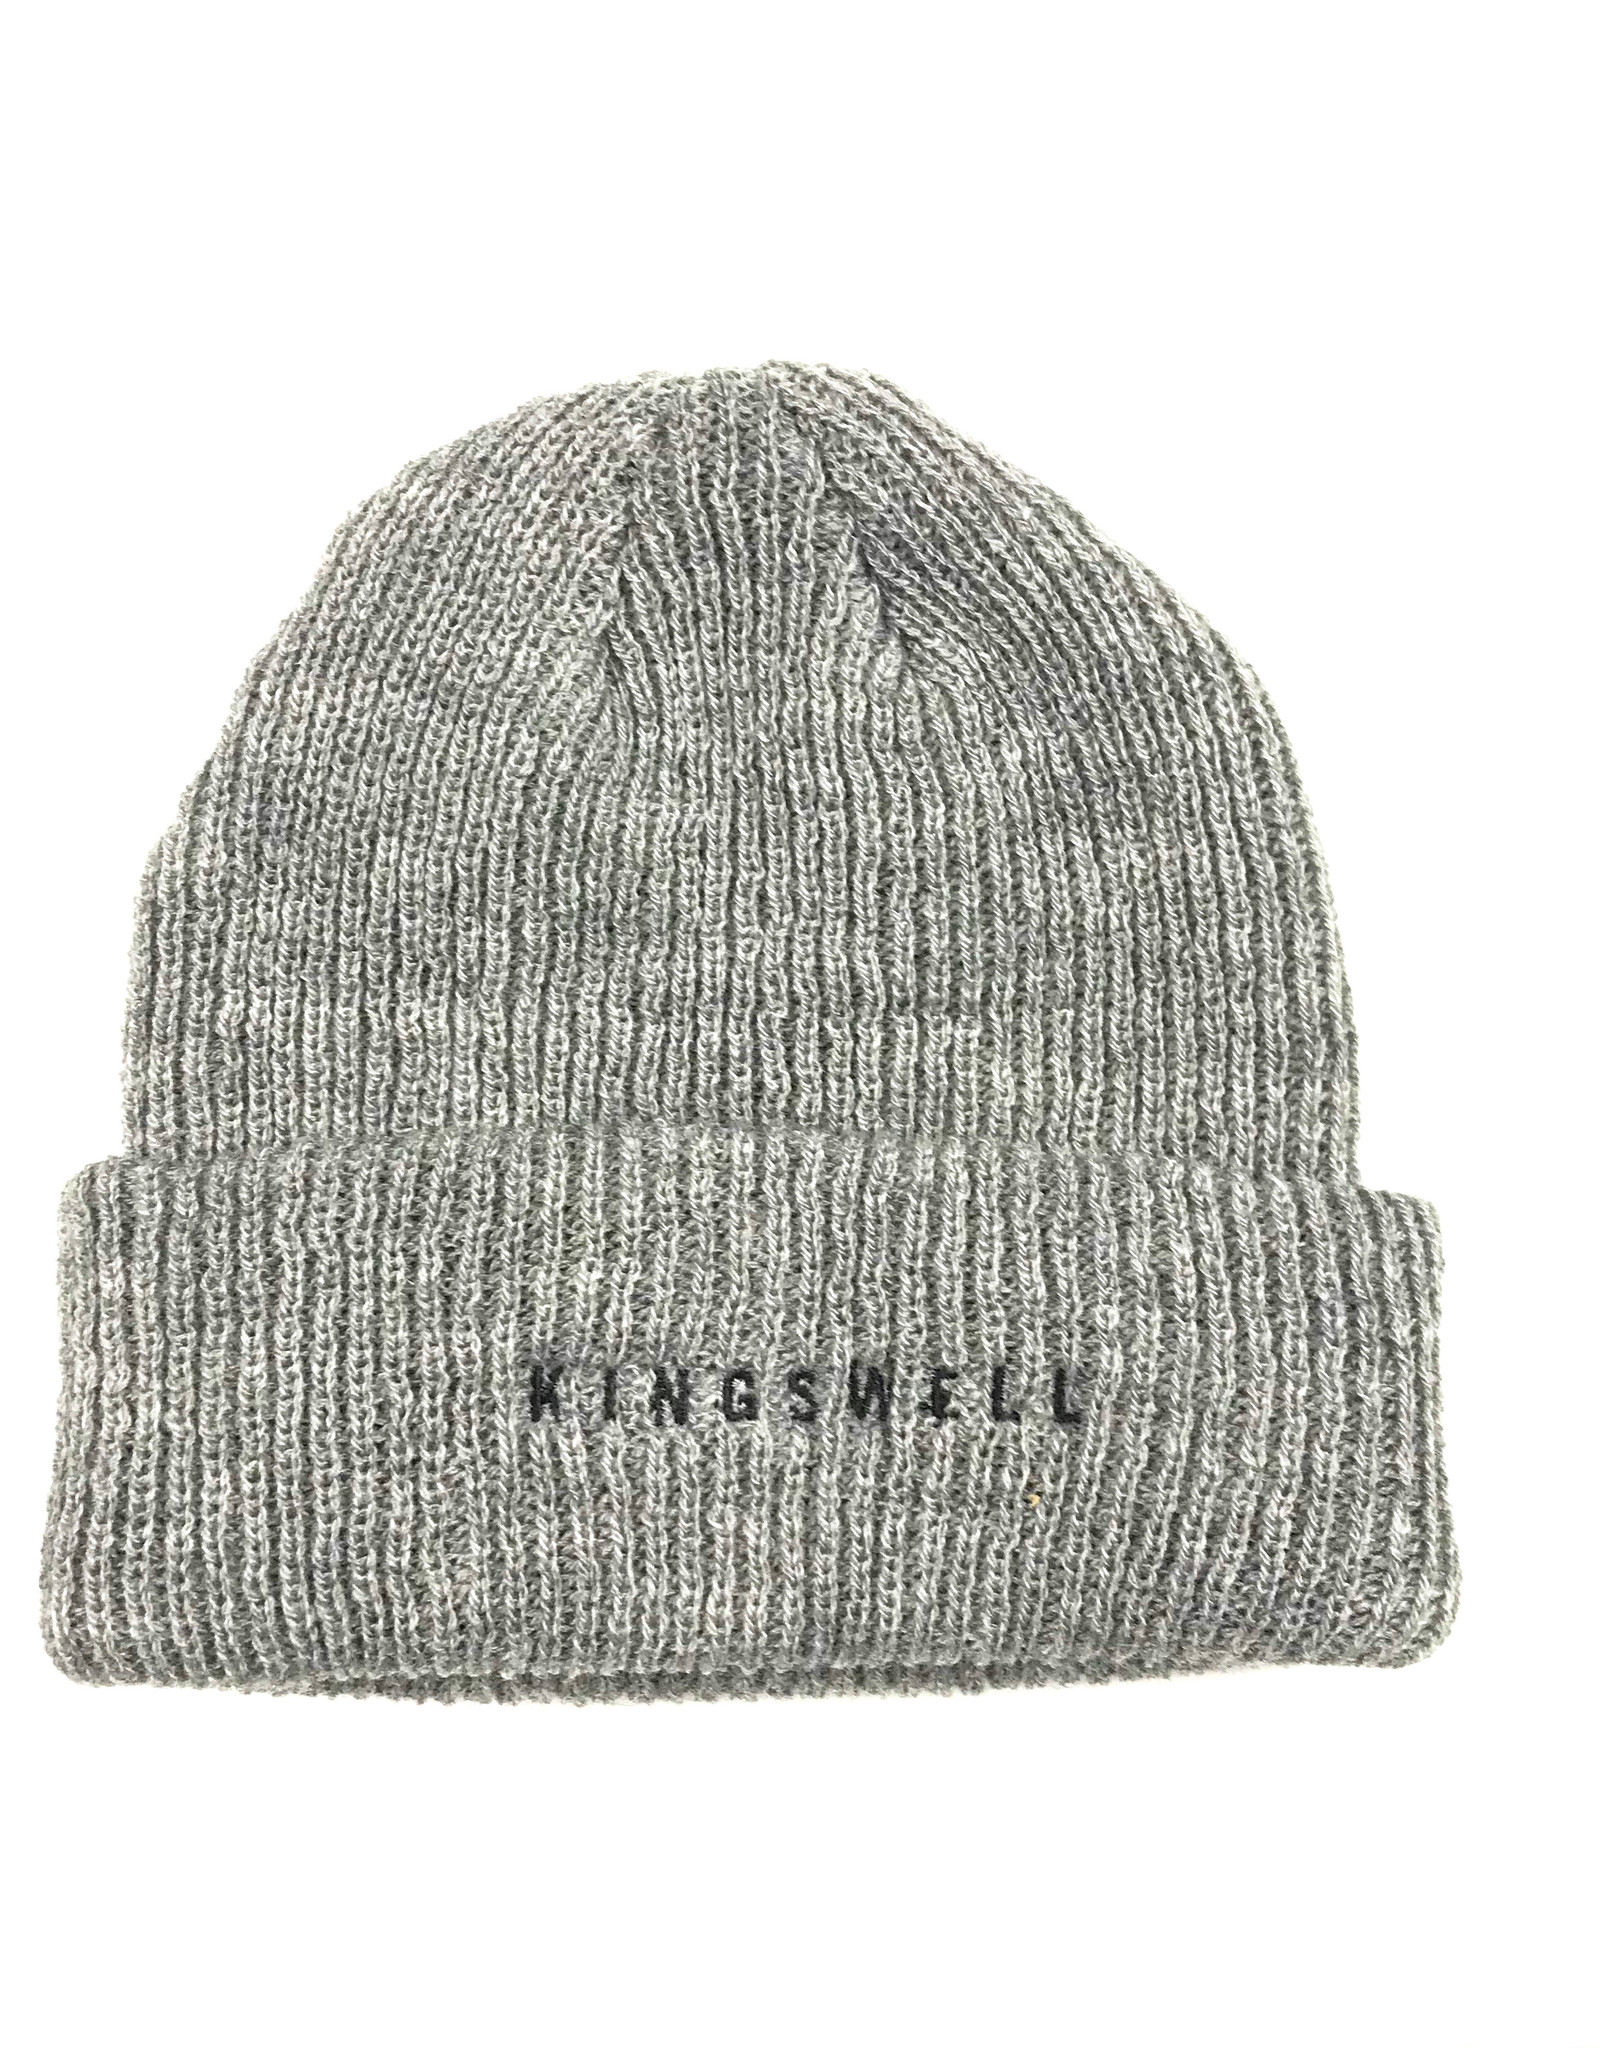 KINGSWELL KINGSWELL BEANIE EMBROIDERED - GREY